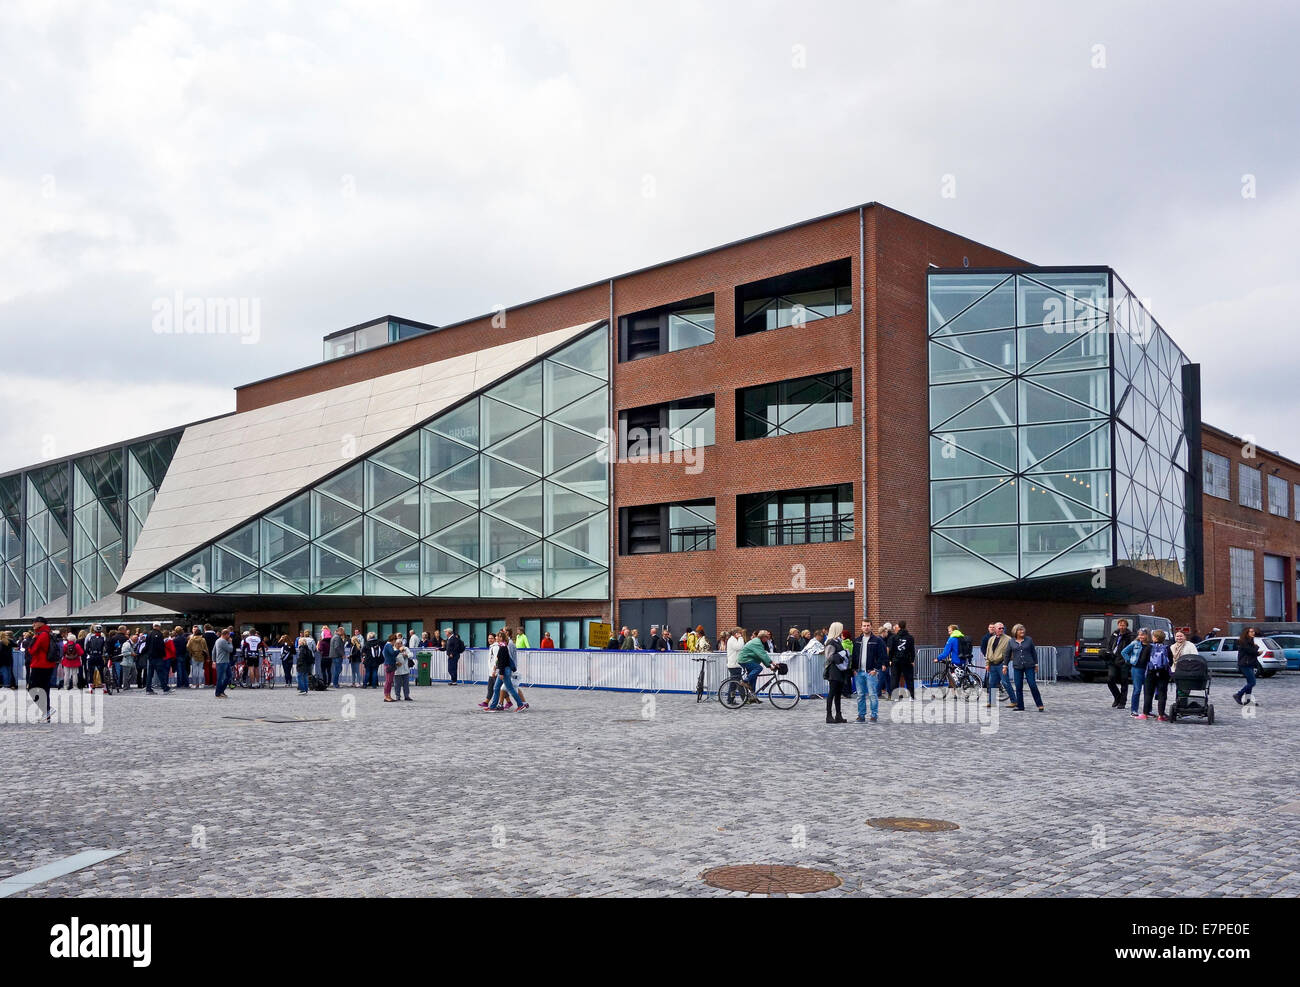 Kulturvaerftet og Bibliotek (The Culture Yard and Library) on the waterfront in Elsinore Denmark - Stock Image